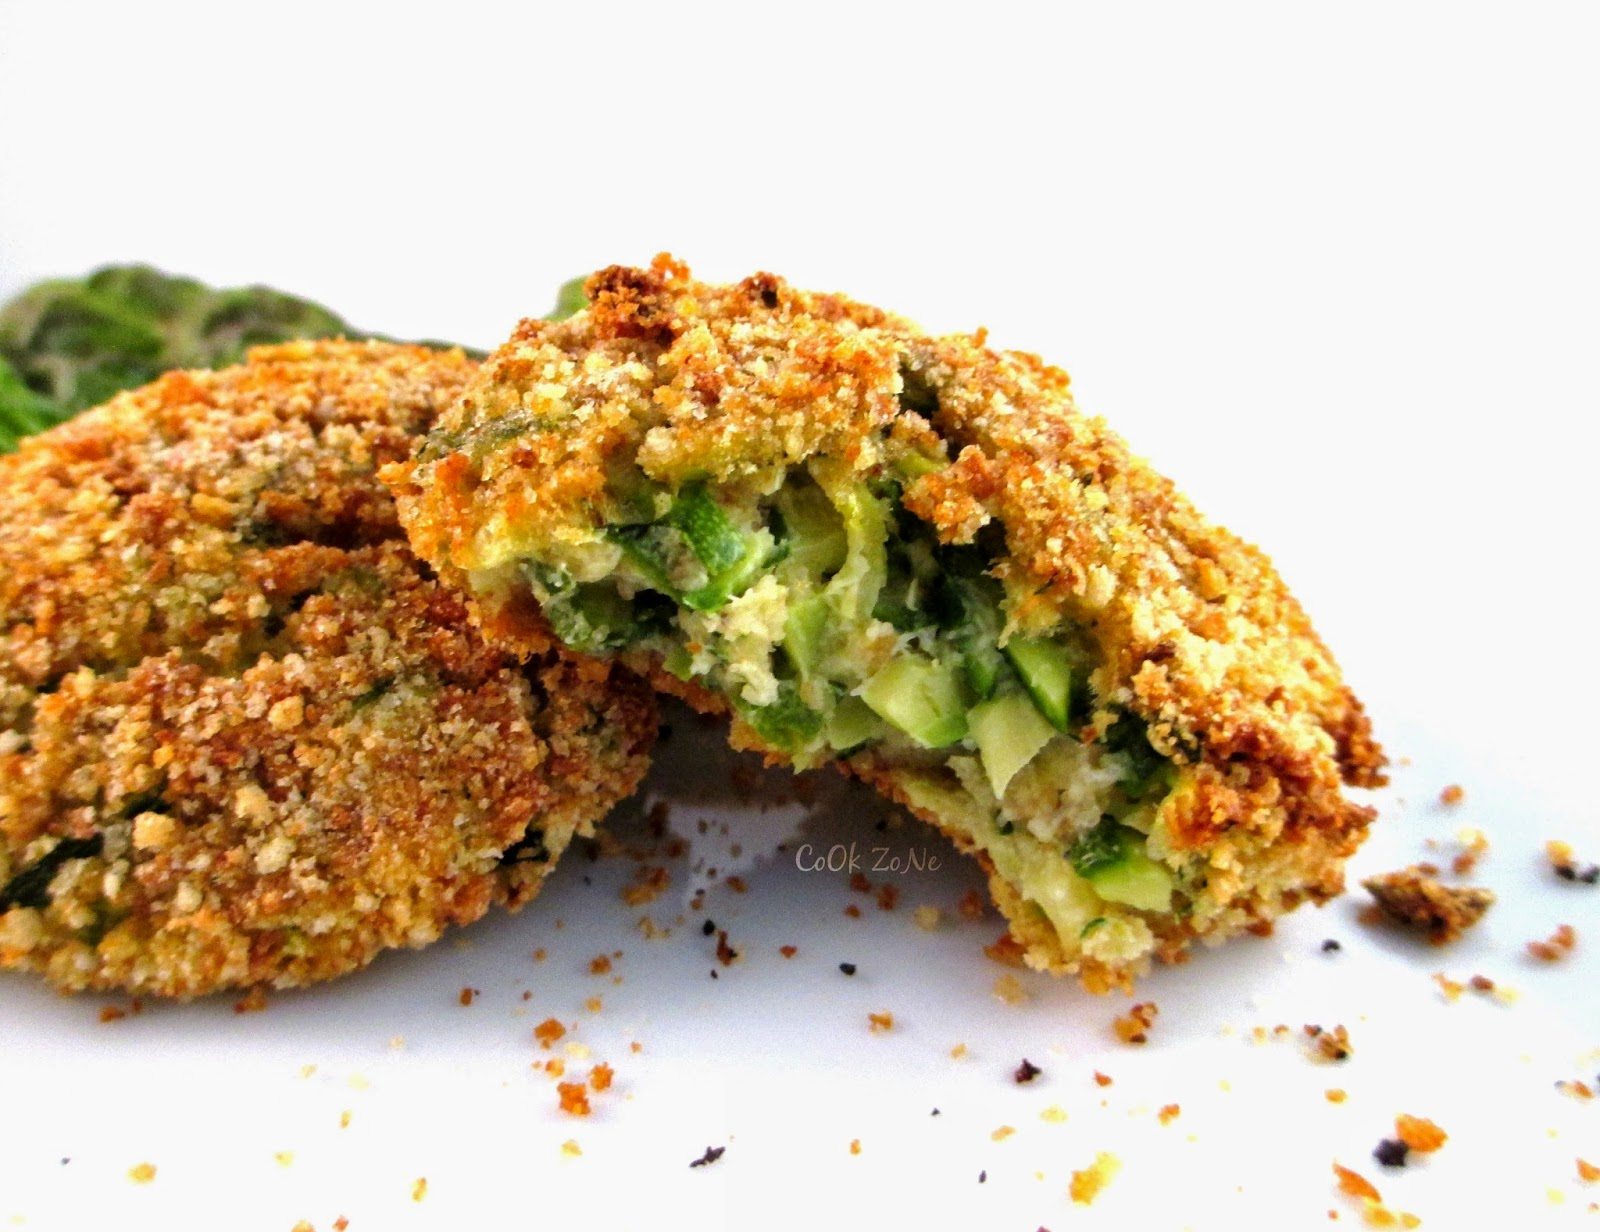 Top CoOk ZoNe: Polpette di zucchine light (al forno!) PK84